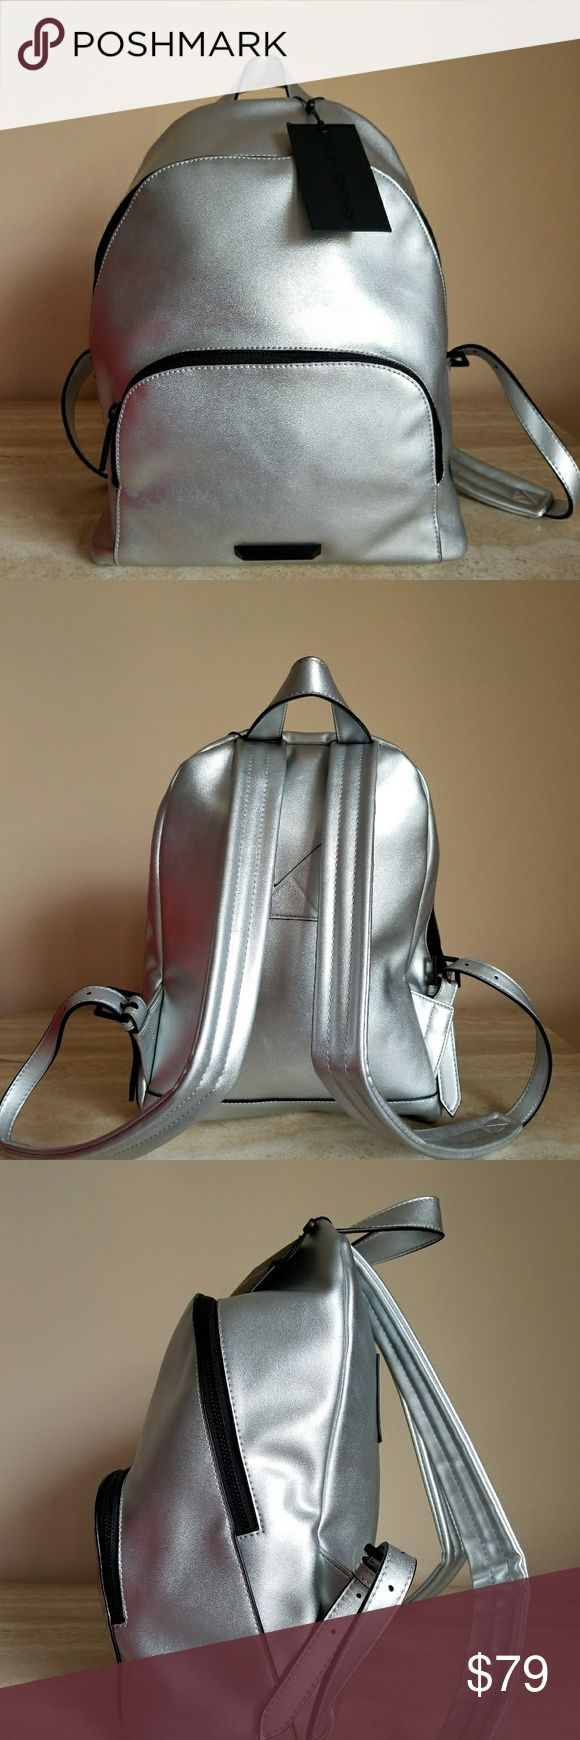 Kendal and Kylie vegan free silver backpack The backpack is spacious, straps are adjustable, durable, modern great for all ages. Kendall & Kylie Bags Backpacks